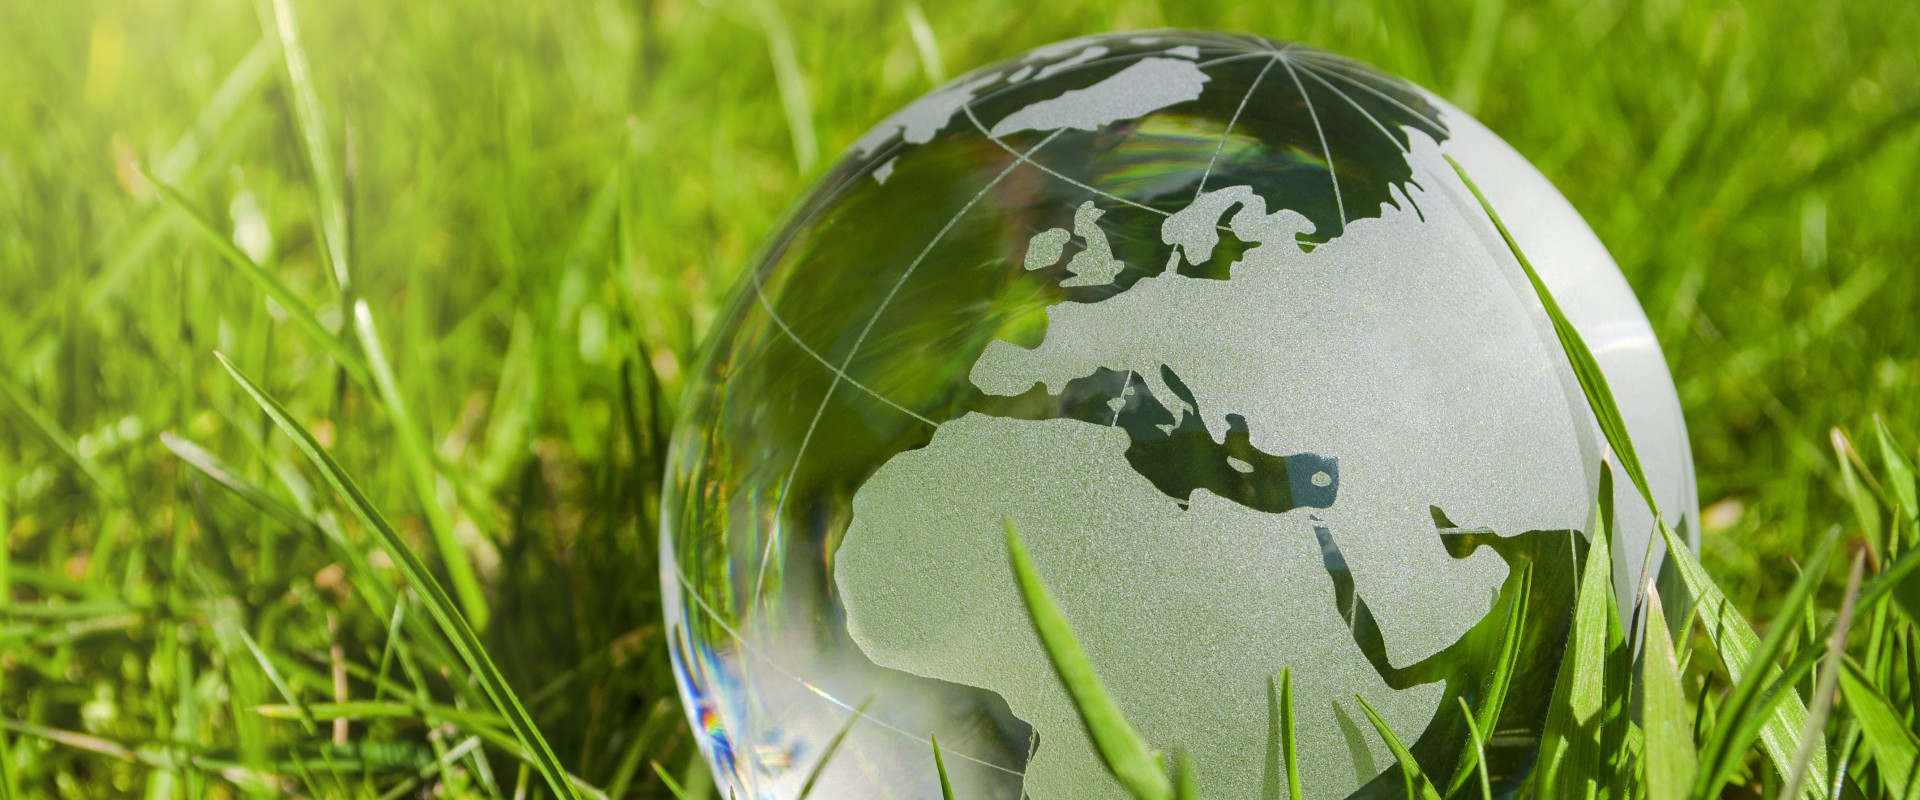 Glass globe in juicy grass